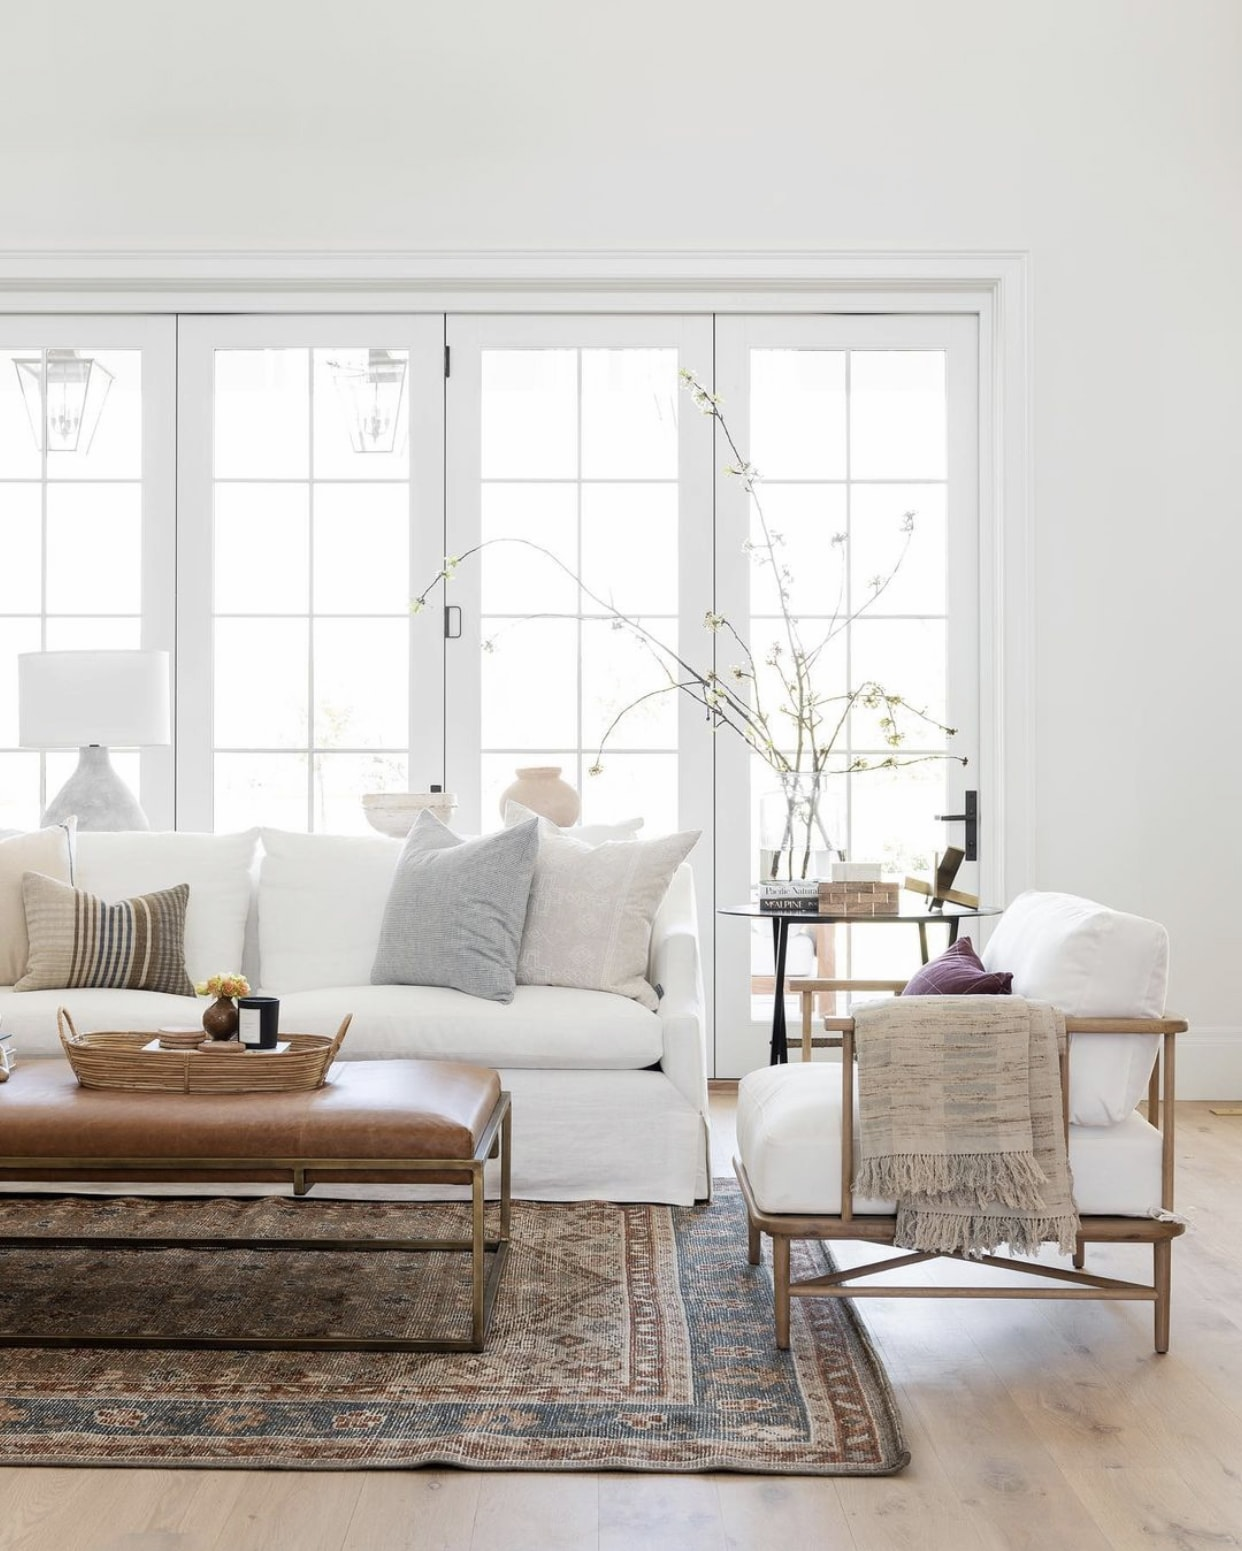 Figuring out the best living room layout